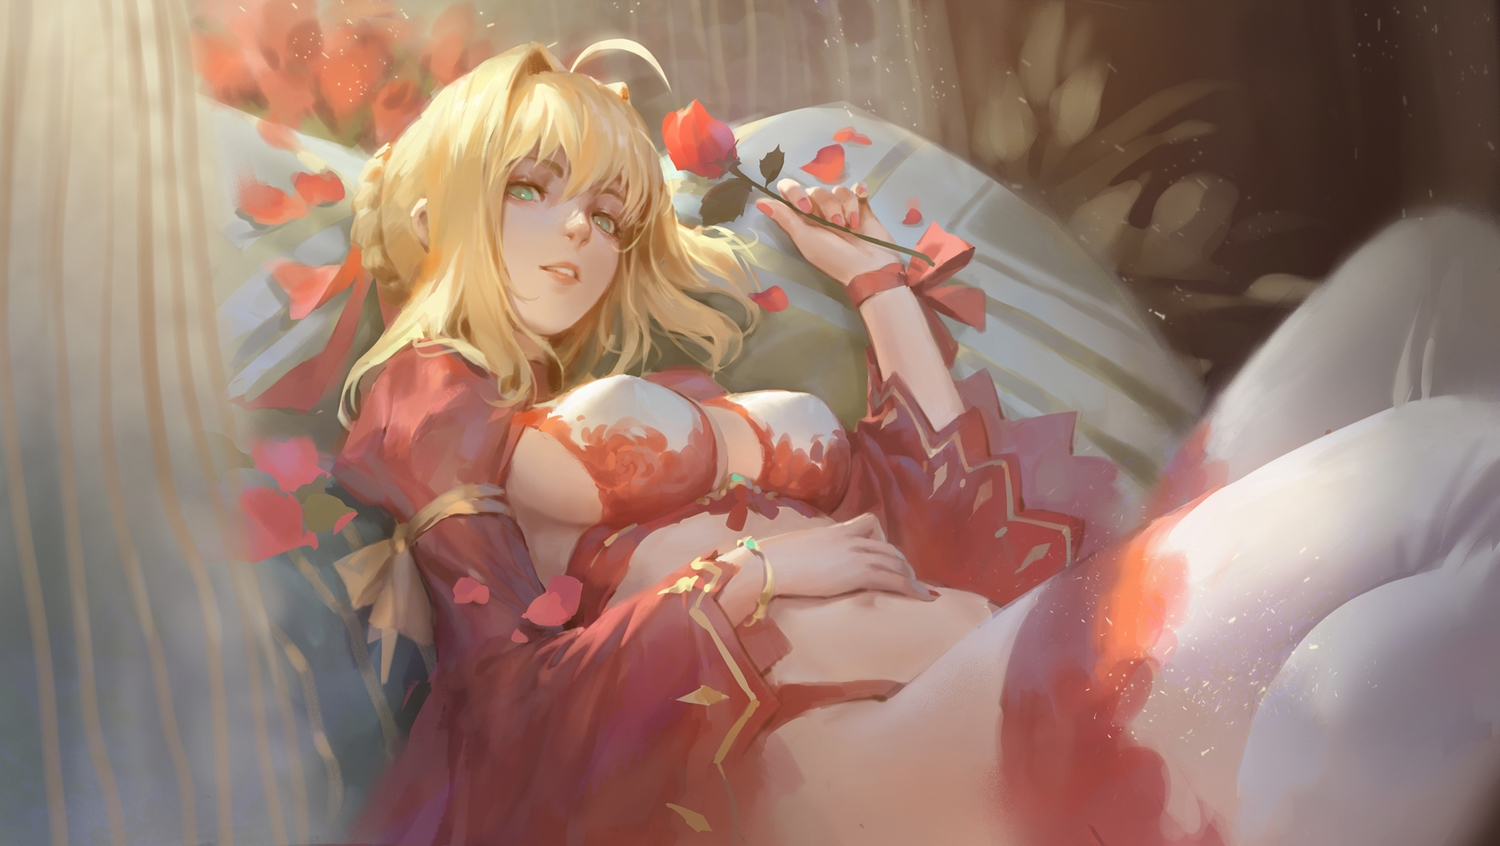 bed blonde_hair braids breasts fate/grand_order fate_(series) flowers green_eyes navel nero_claudius_(fate) qmo_(chalsoma) rose short_hair sideboob thighhighs